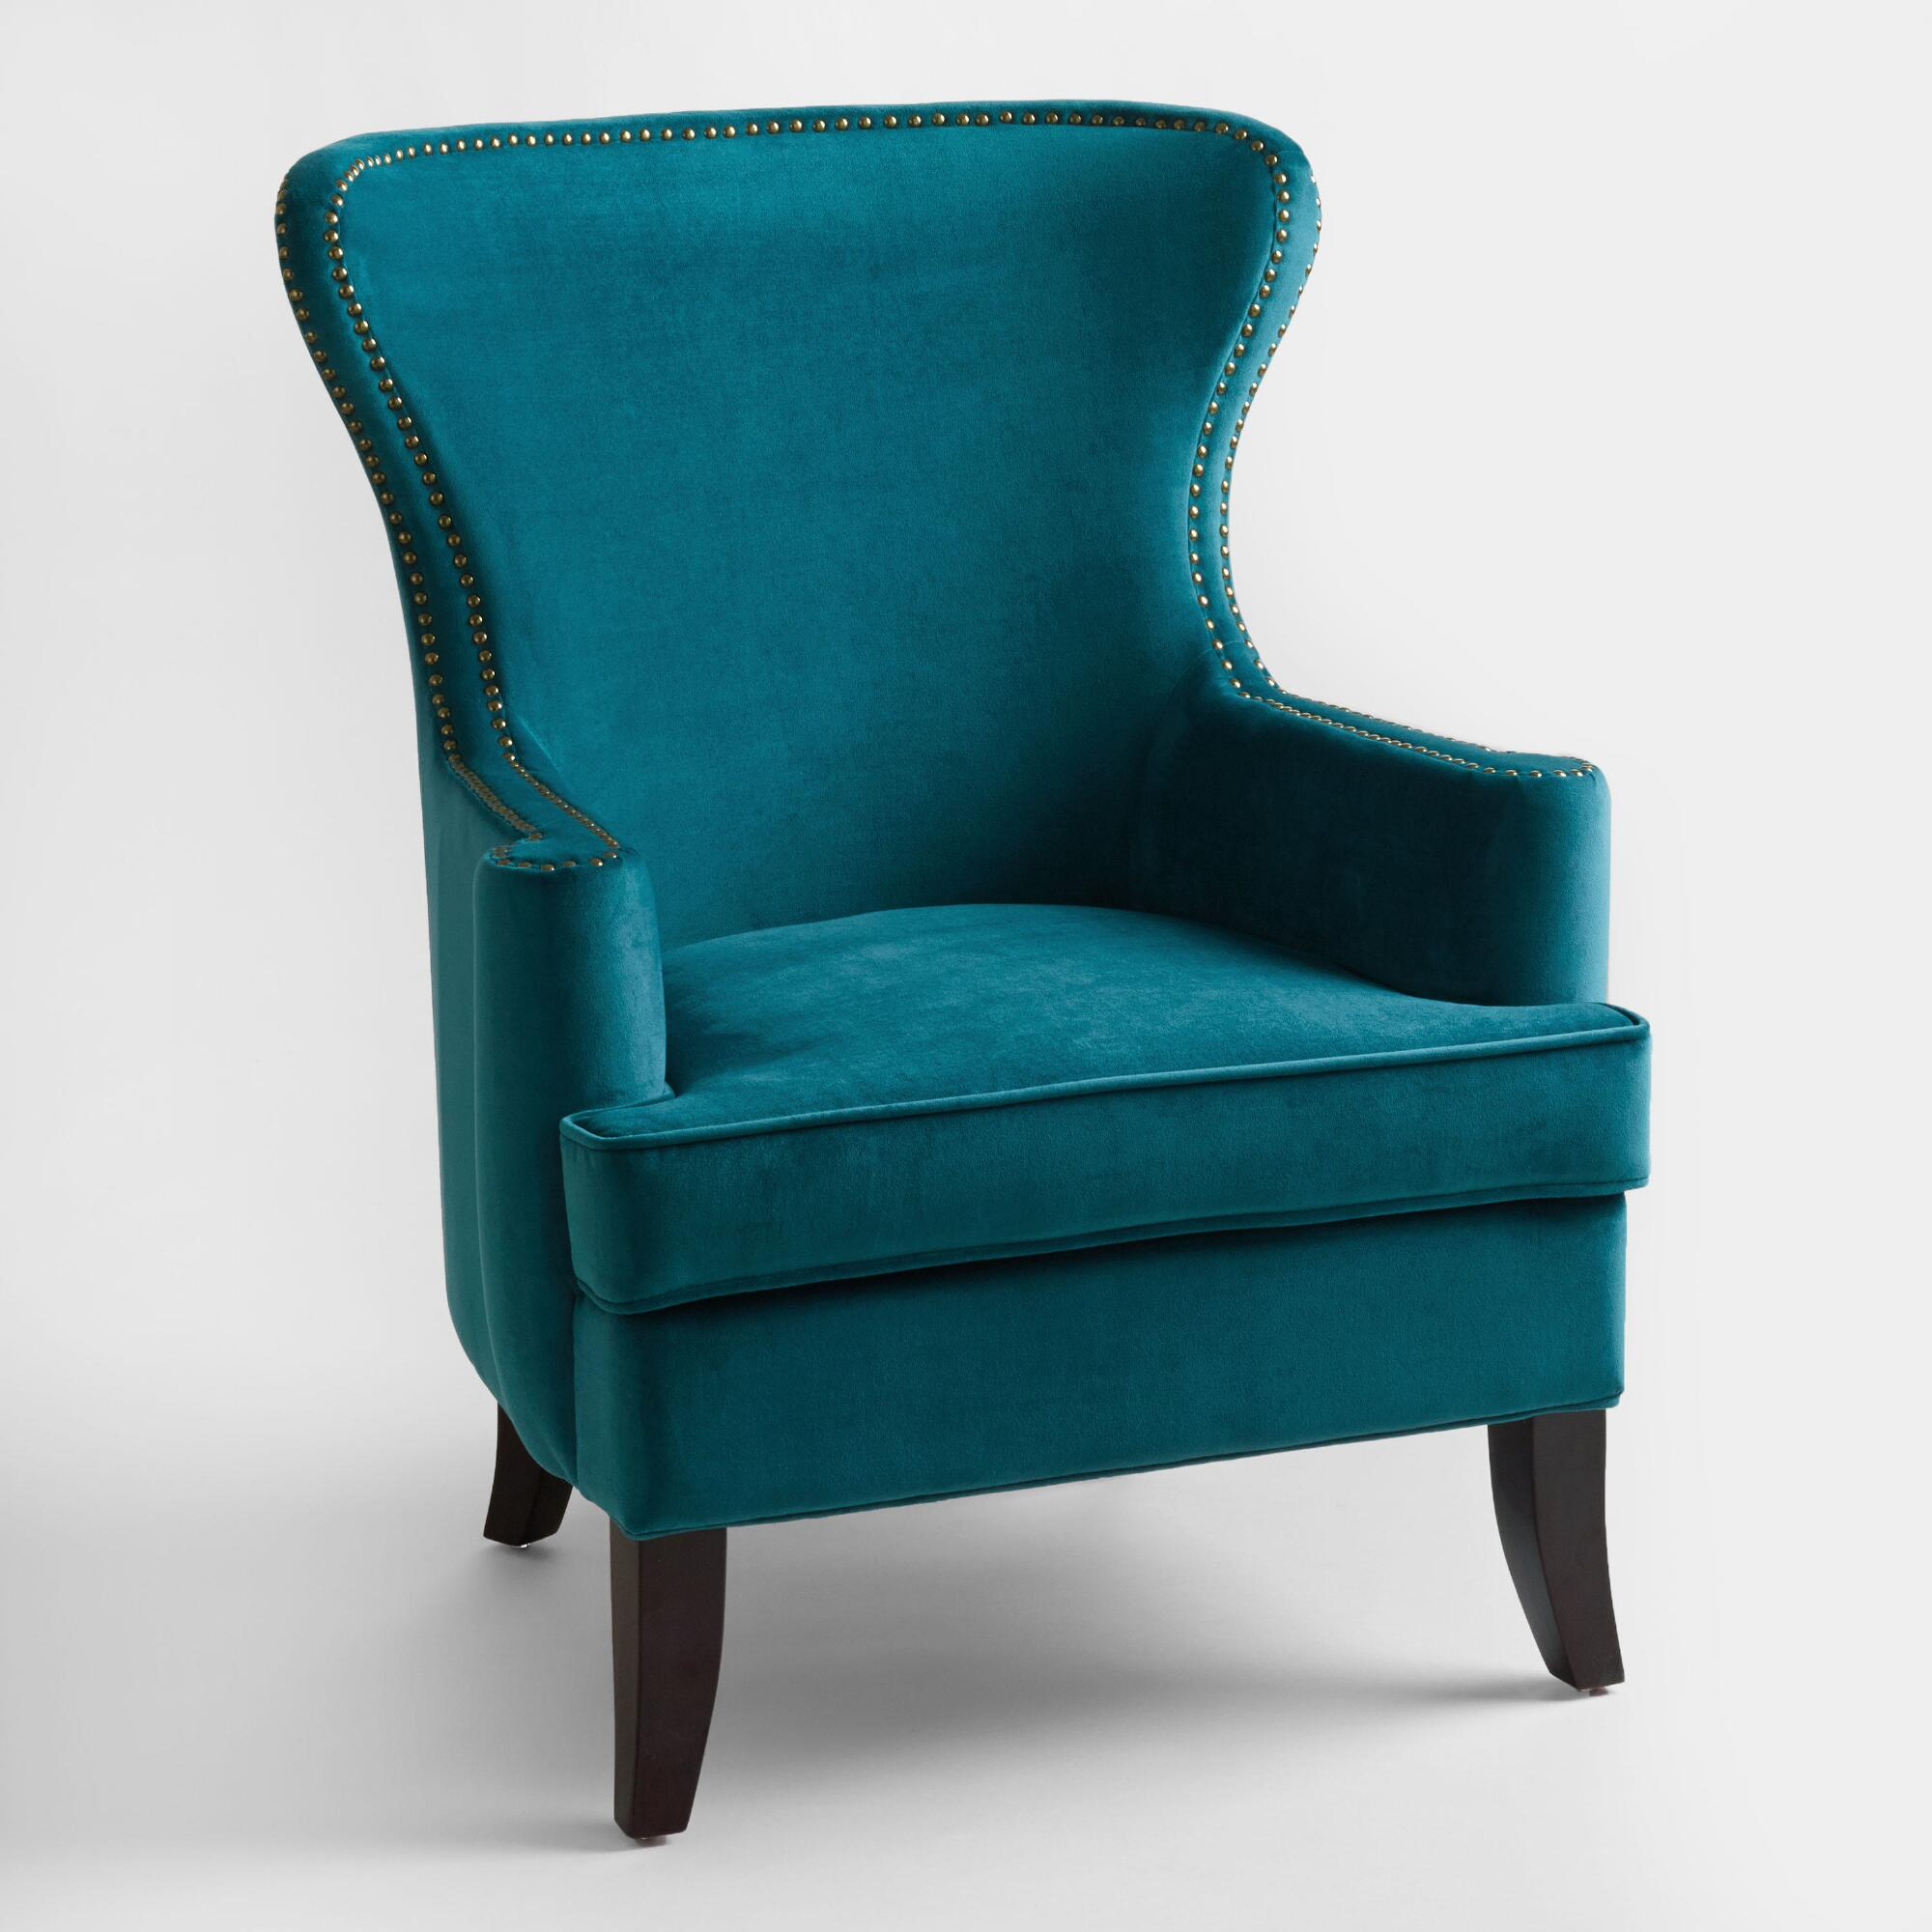 Teal wingback chair - Teal Wingback Chair 3